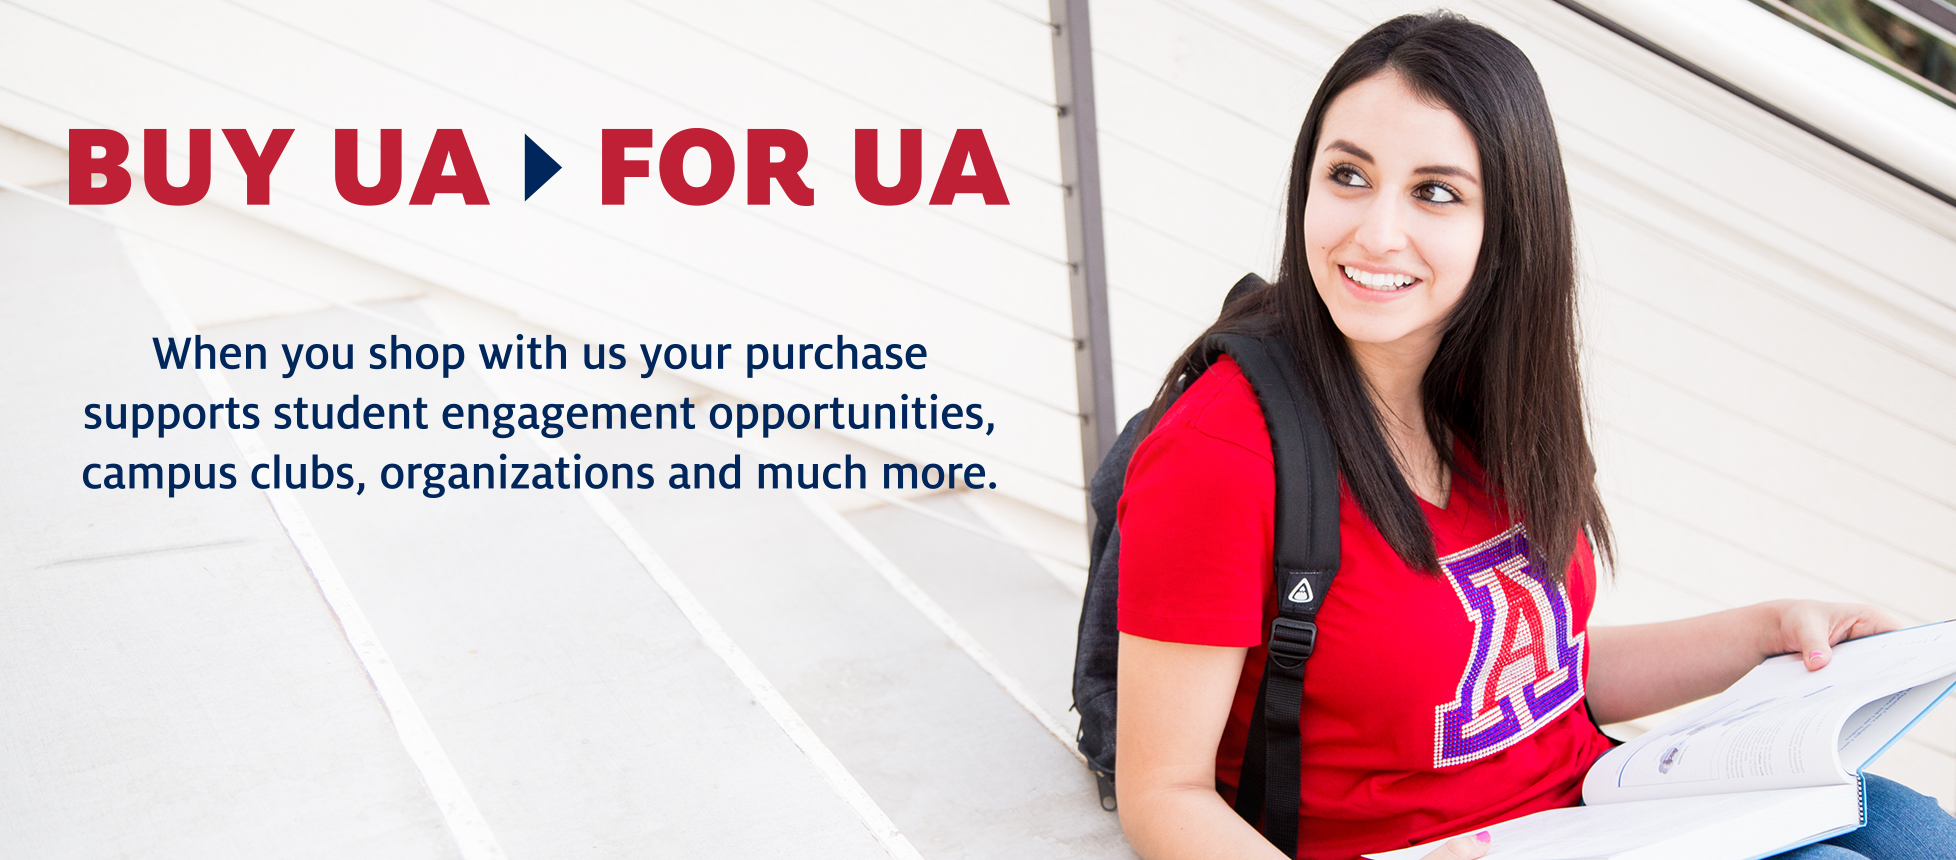 BUY UA ▶ FOR UA